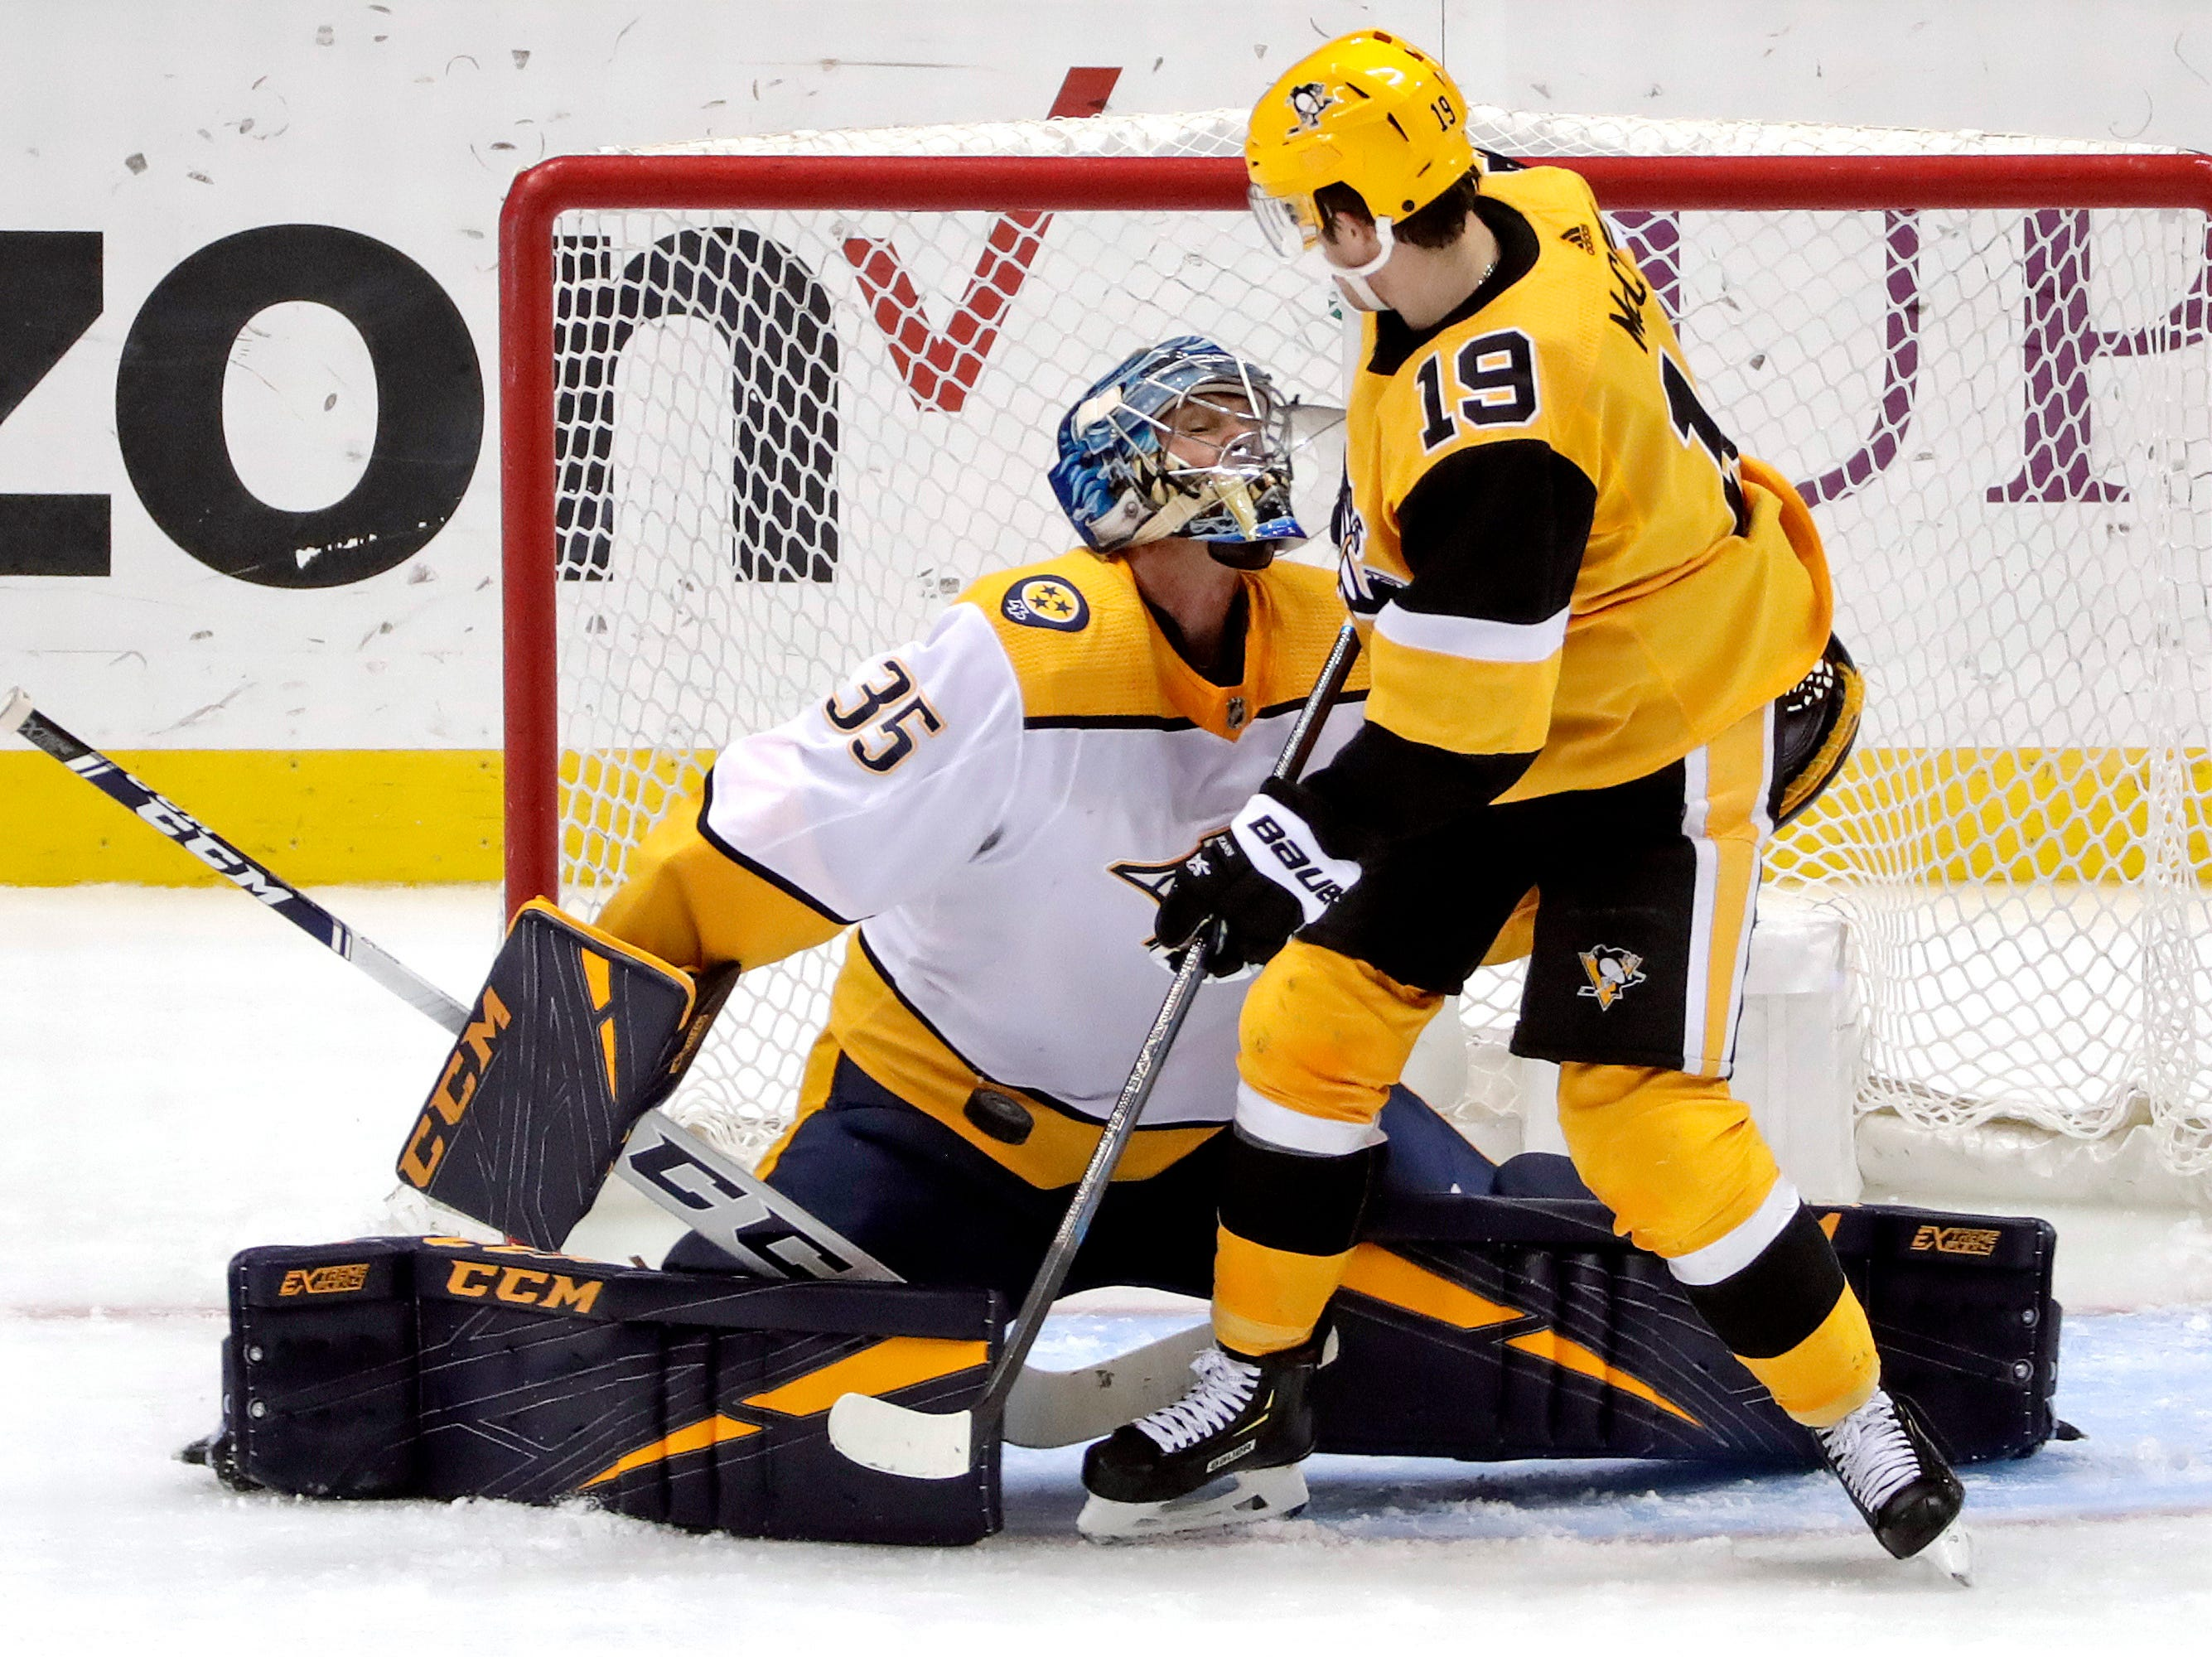 Nashville Predators goaltender Pekka Rinne (35) stops a shot with Pittsburgh Penguins' Jared McCann (19) screening him and looking for a rebound during the third period of an NHL hockey game in Pittsburgh, Friday, March 29, 2019. (AP Photo/Gene J. Puskar)